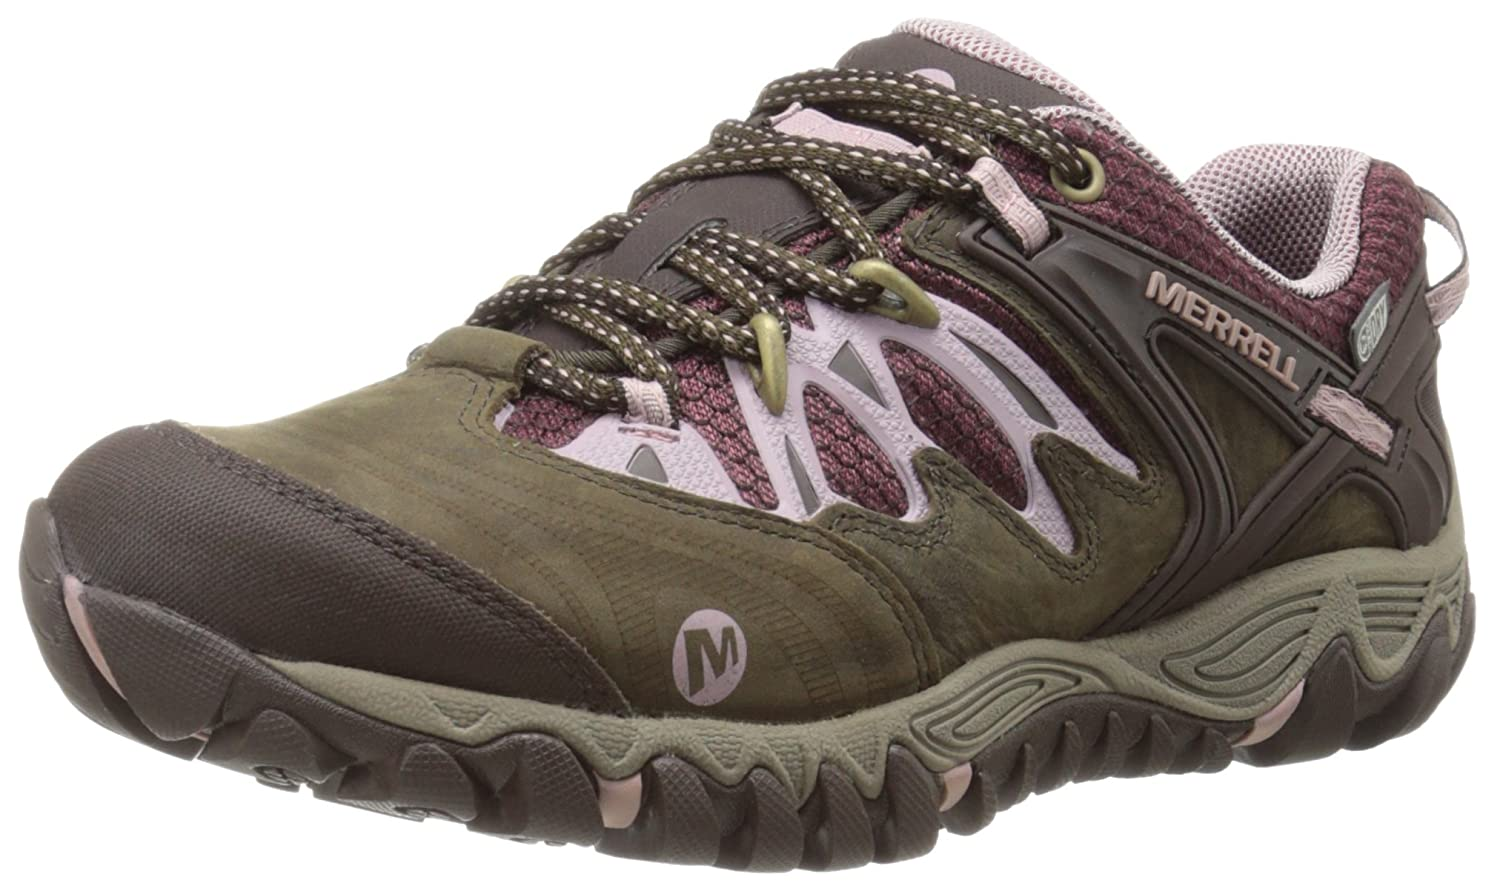 Merrell Women's All Out Blaze Waterproof Hiking Shoe B00D1N40YK 7 B(M) US|Black Slate/Blush